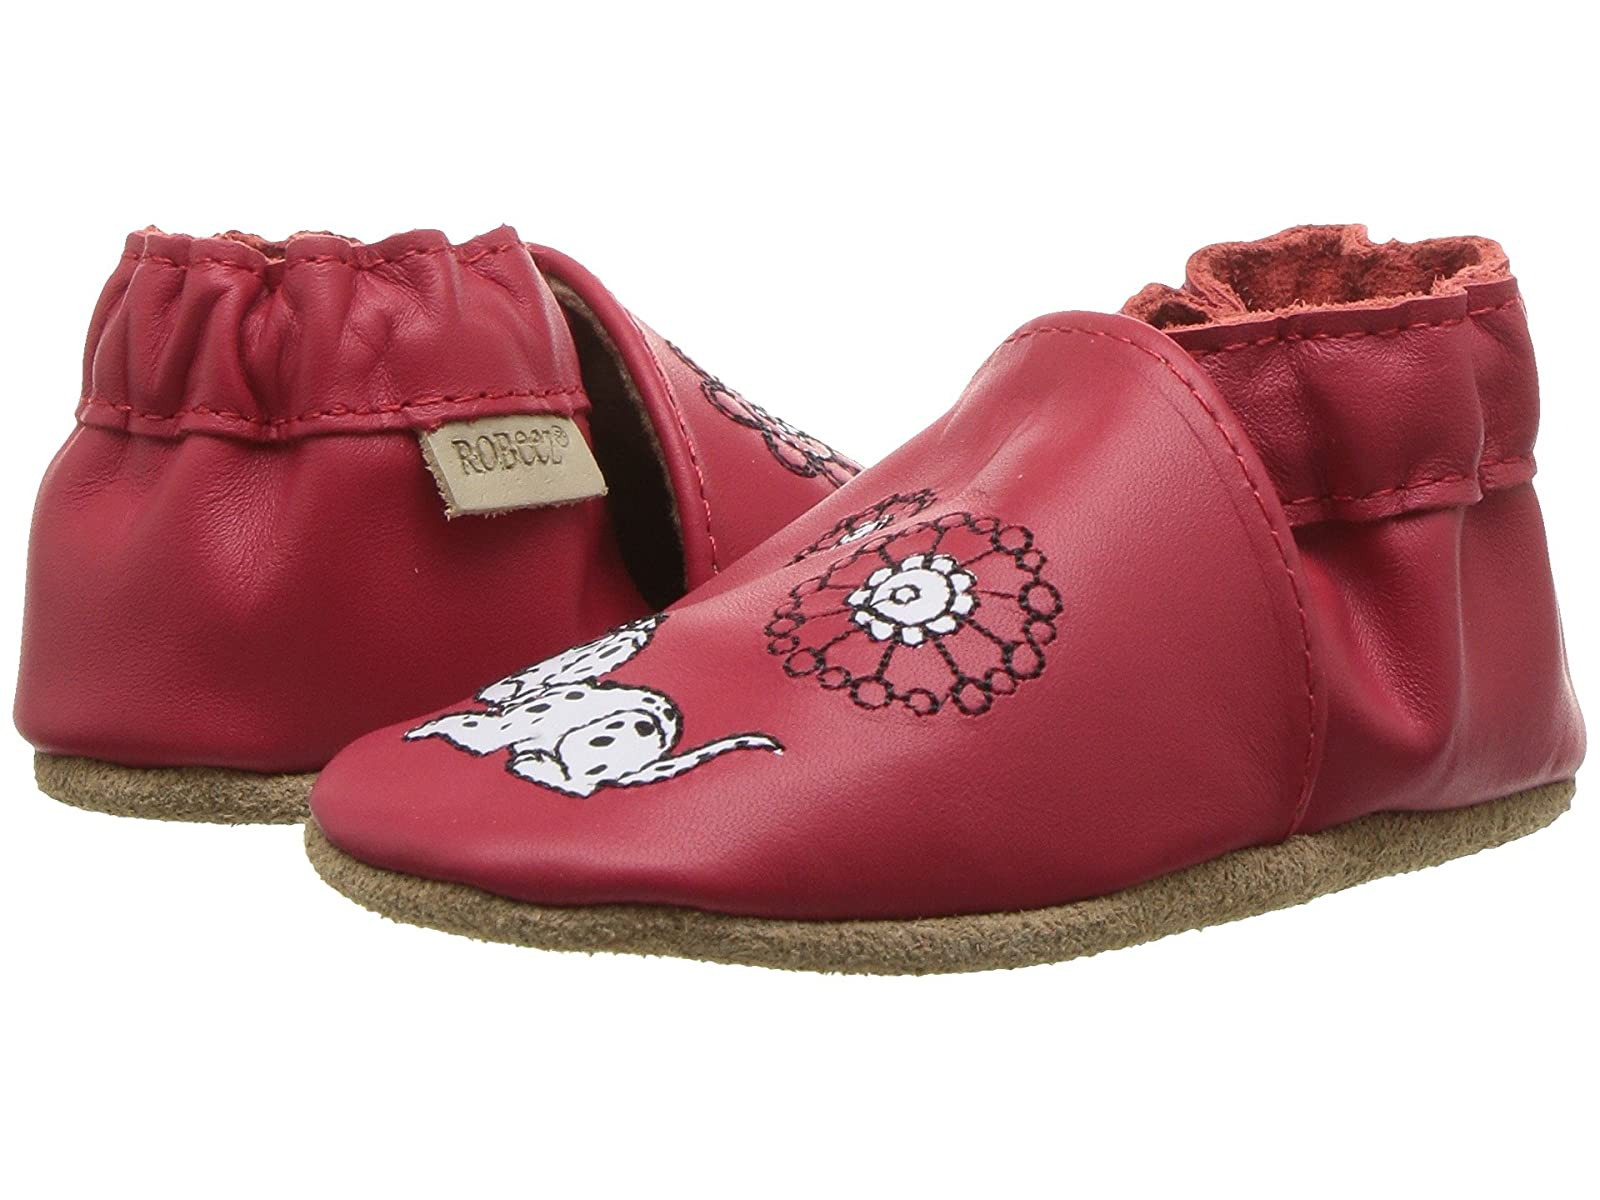 Robeez Disney Garden Fun Soft Sole (Infant/Toddler)Atmospheric grades have affordable shoes